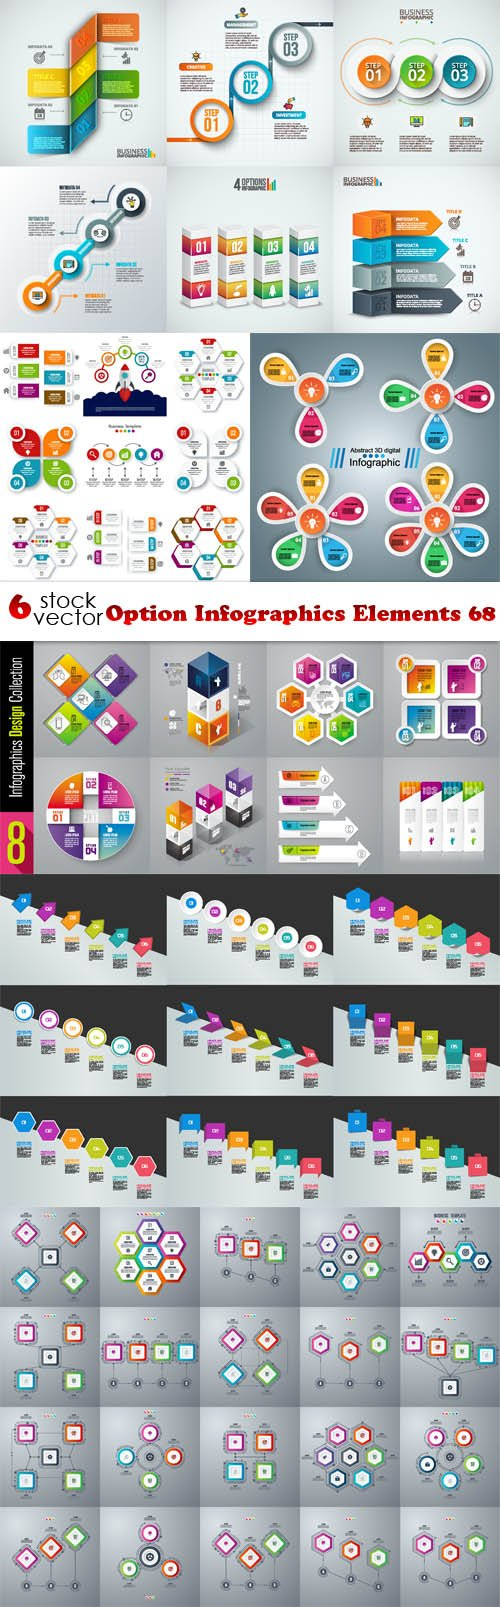 Vectors - Option Infographics Elements 68